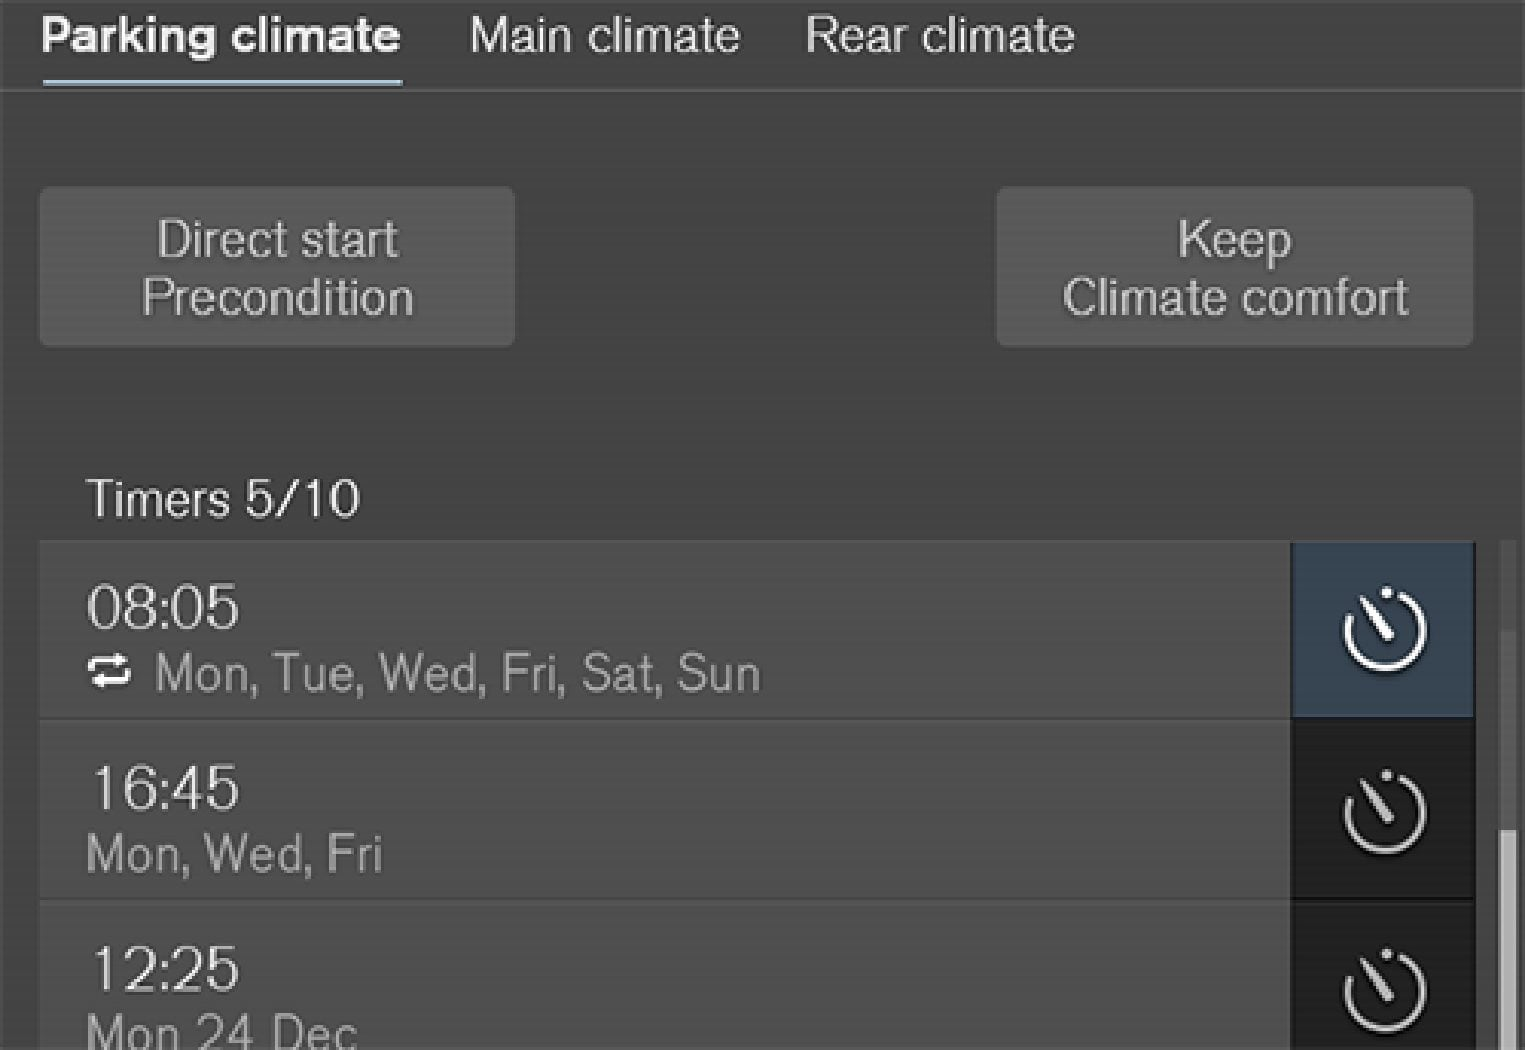 The timer buttons in the Parking climate  tab in the climate view.